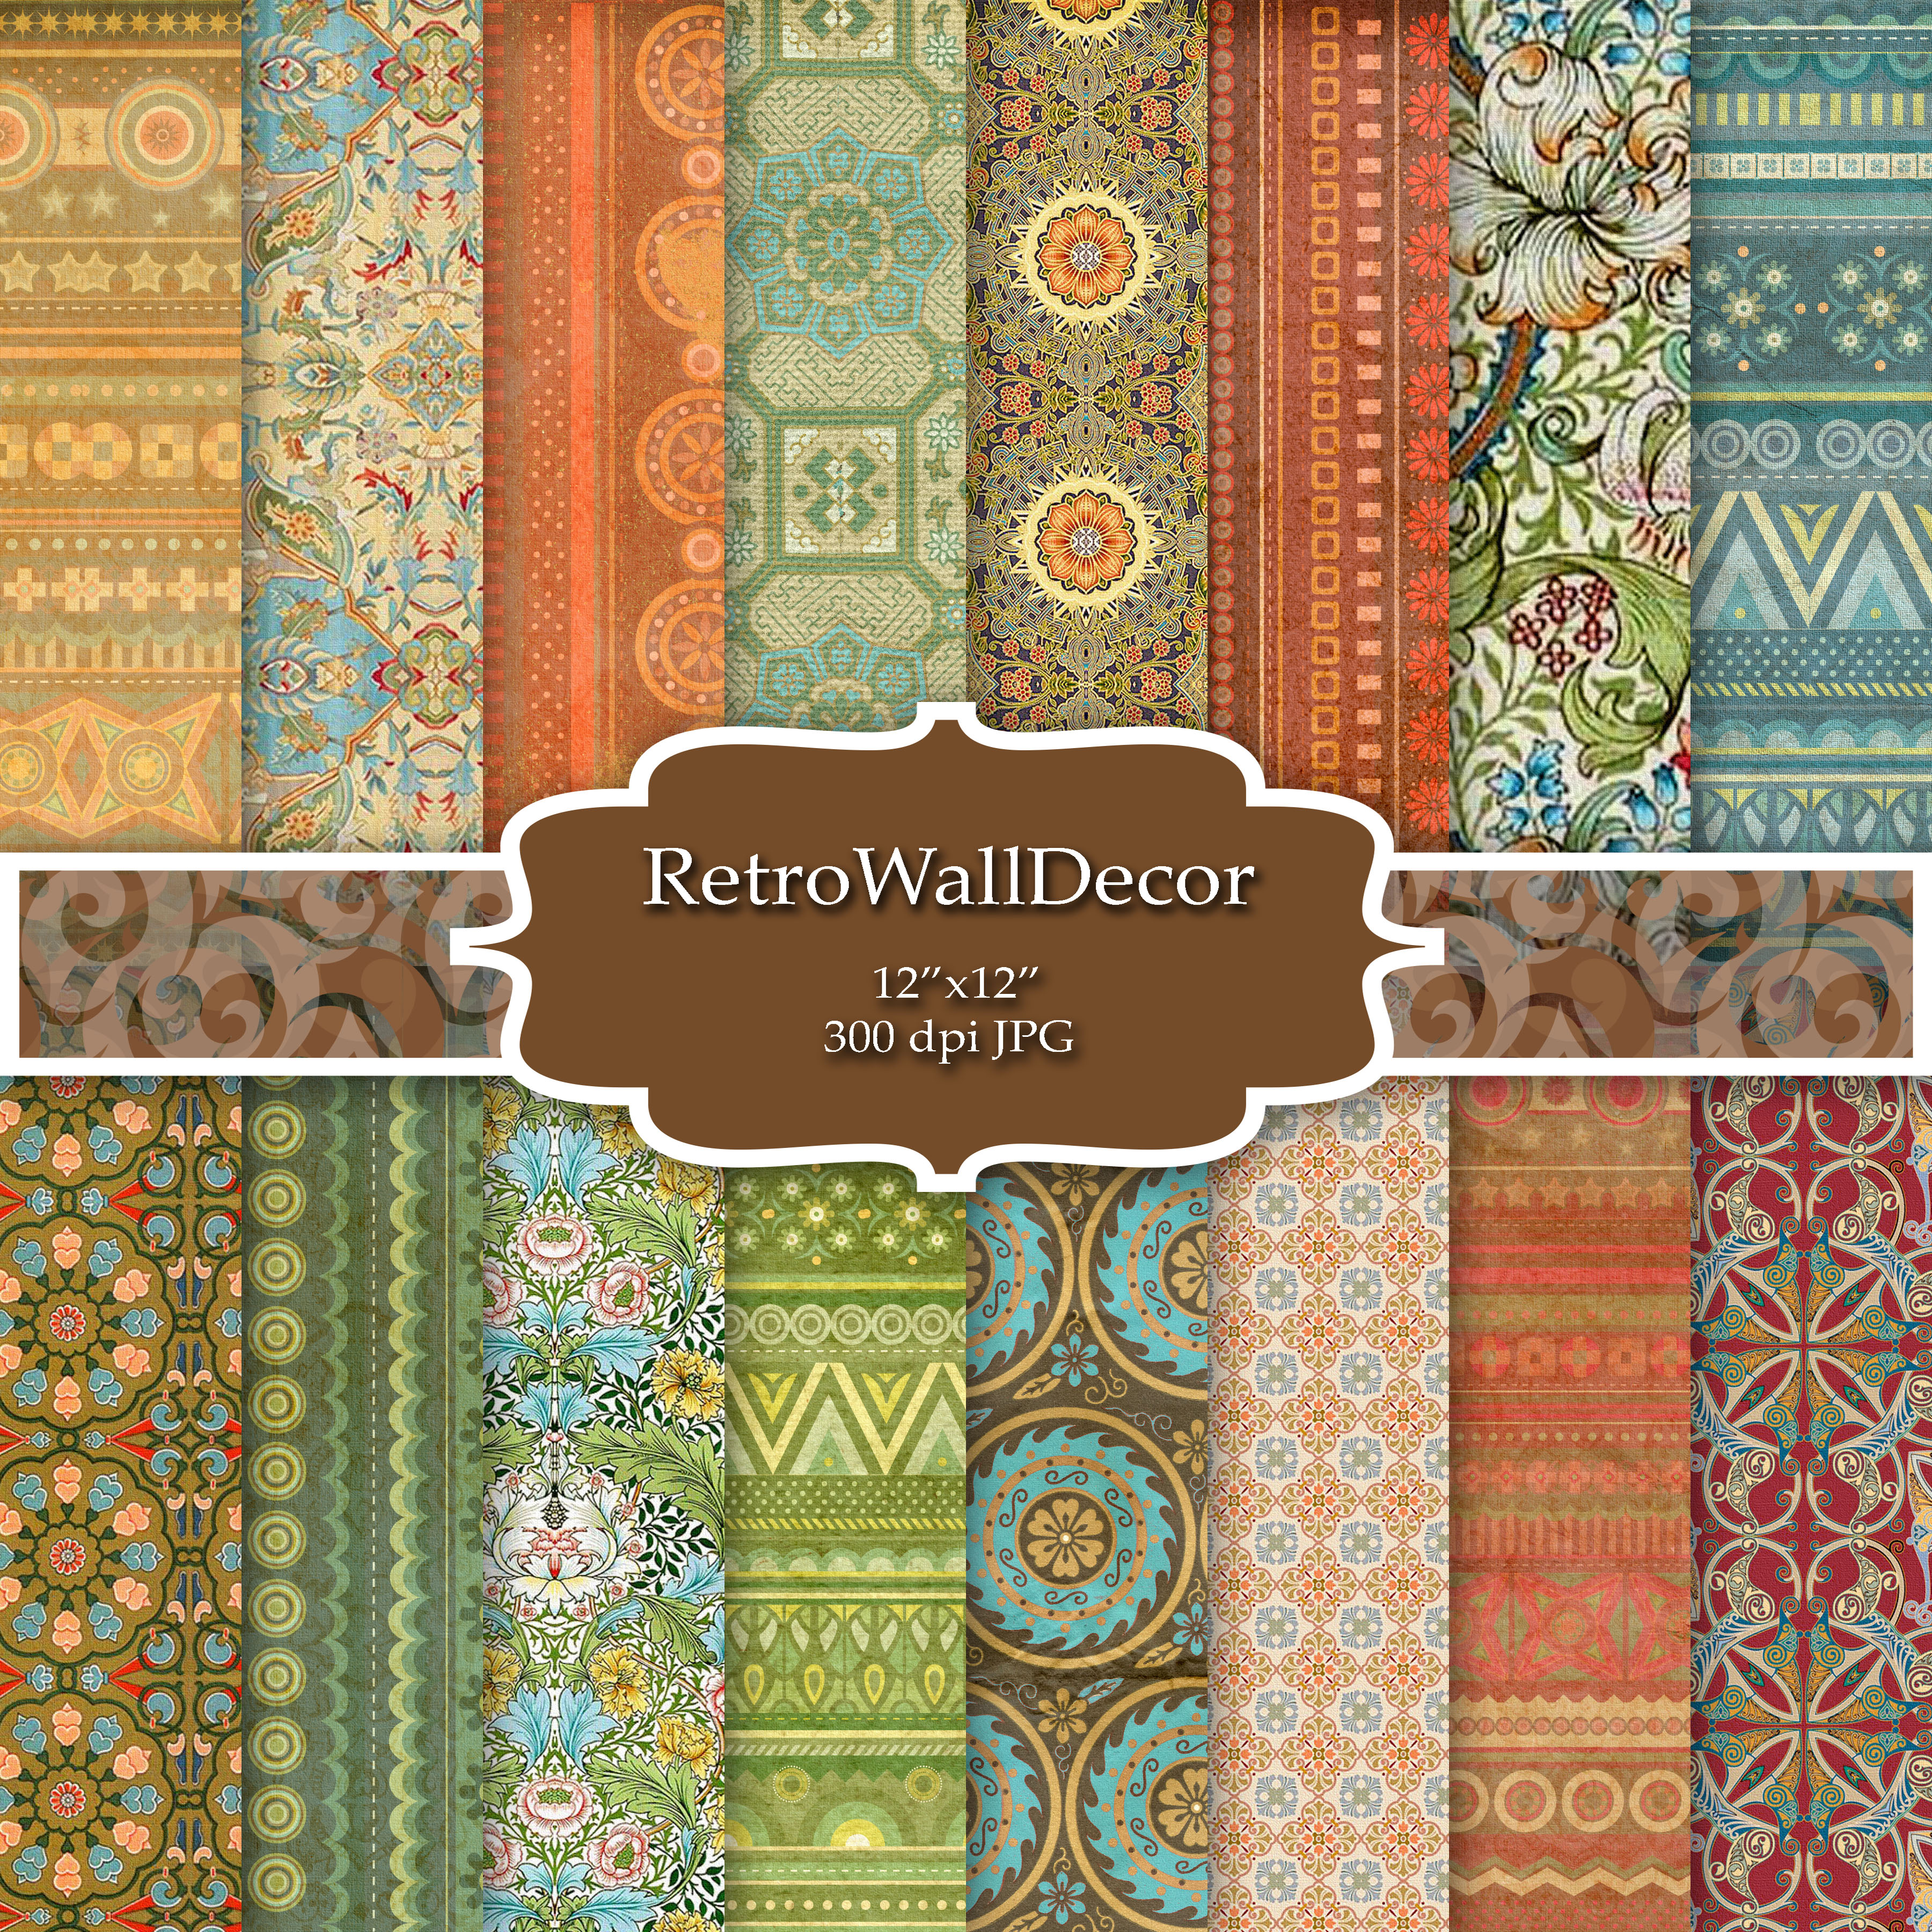 Download Free Vintage Exotic Digital Paper Graphic By Retrowalldecor for Cricut Explore, Silhouette and other cutting machines.